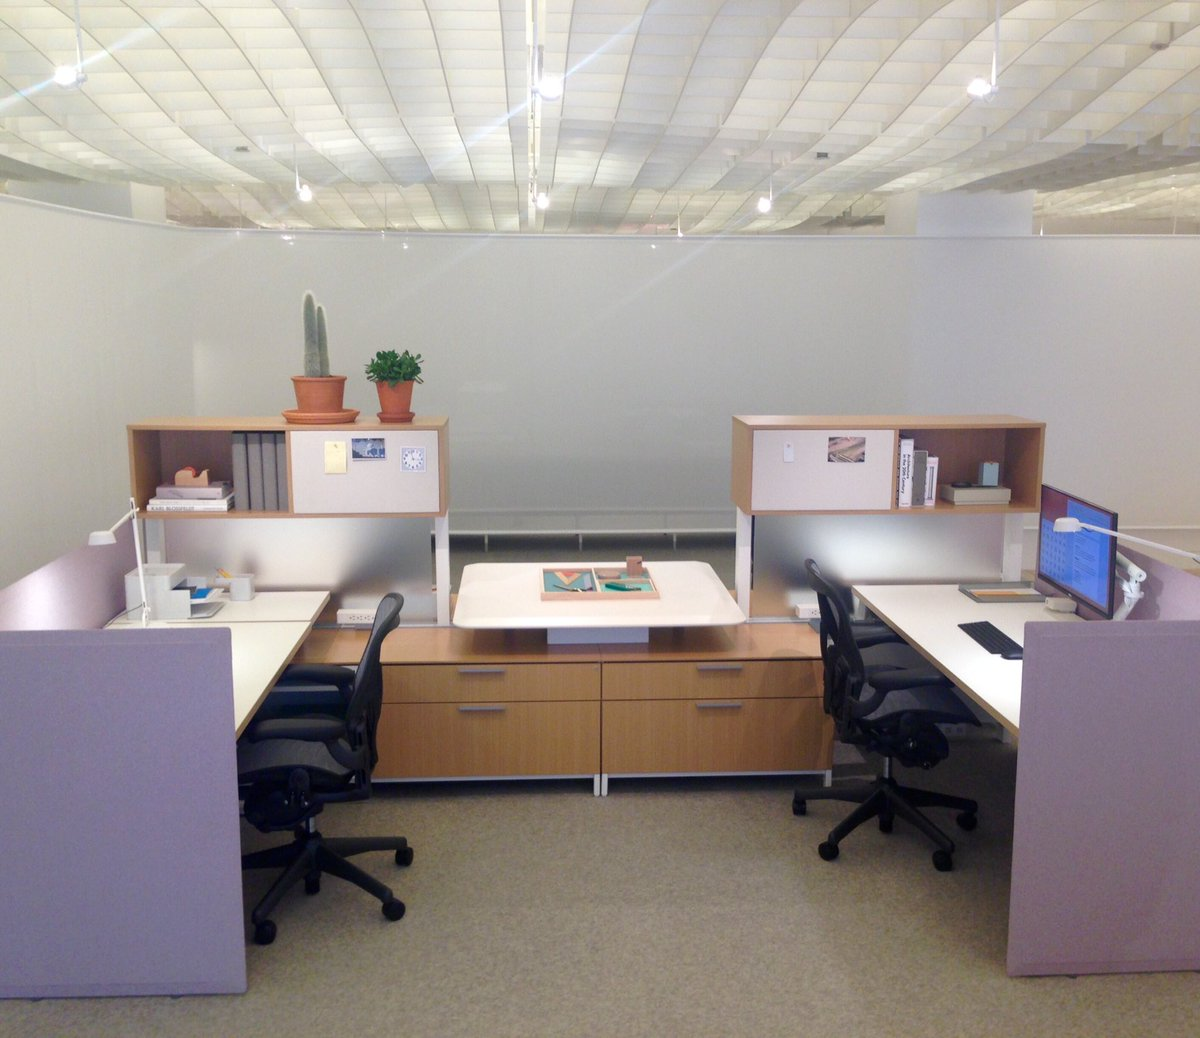 Herman miller canvas office landscapes youtube -  Collaborative Cubicles Hermanmiller Canvas Office Landscape Livingoffice Asdgxchicago2016 Chicago Asdgpic Twitter Com Mksx6o2un8